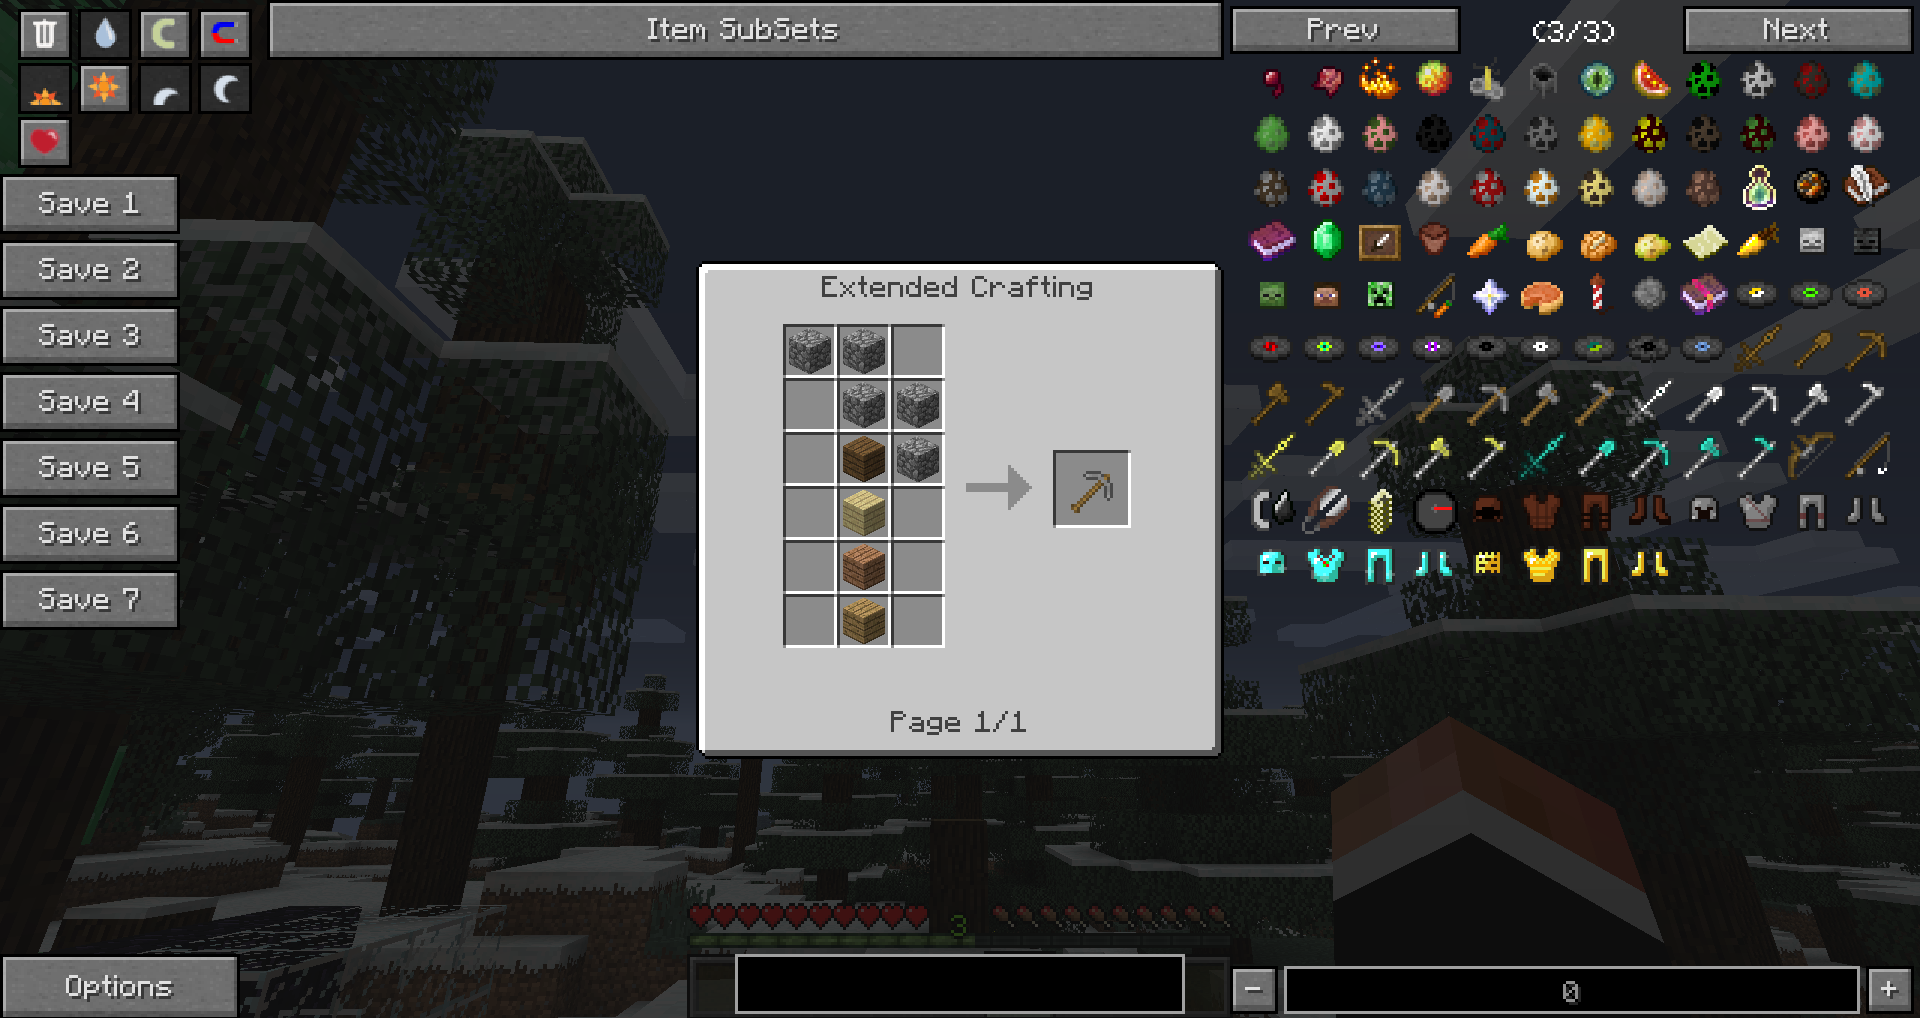 Download Extended Workbench Mod [1.12.2-1.7.10->1.7.2] Mods for Minecraft